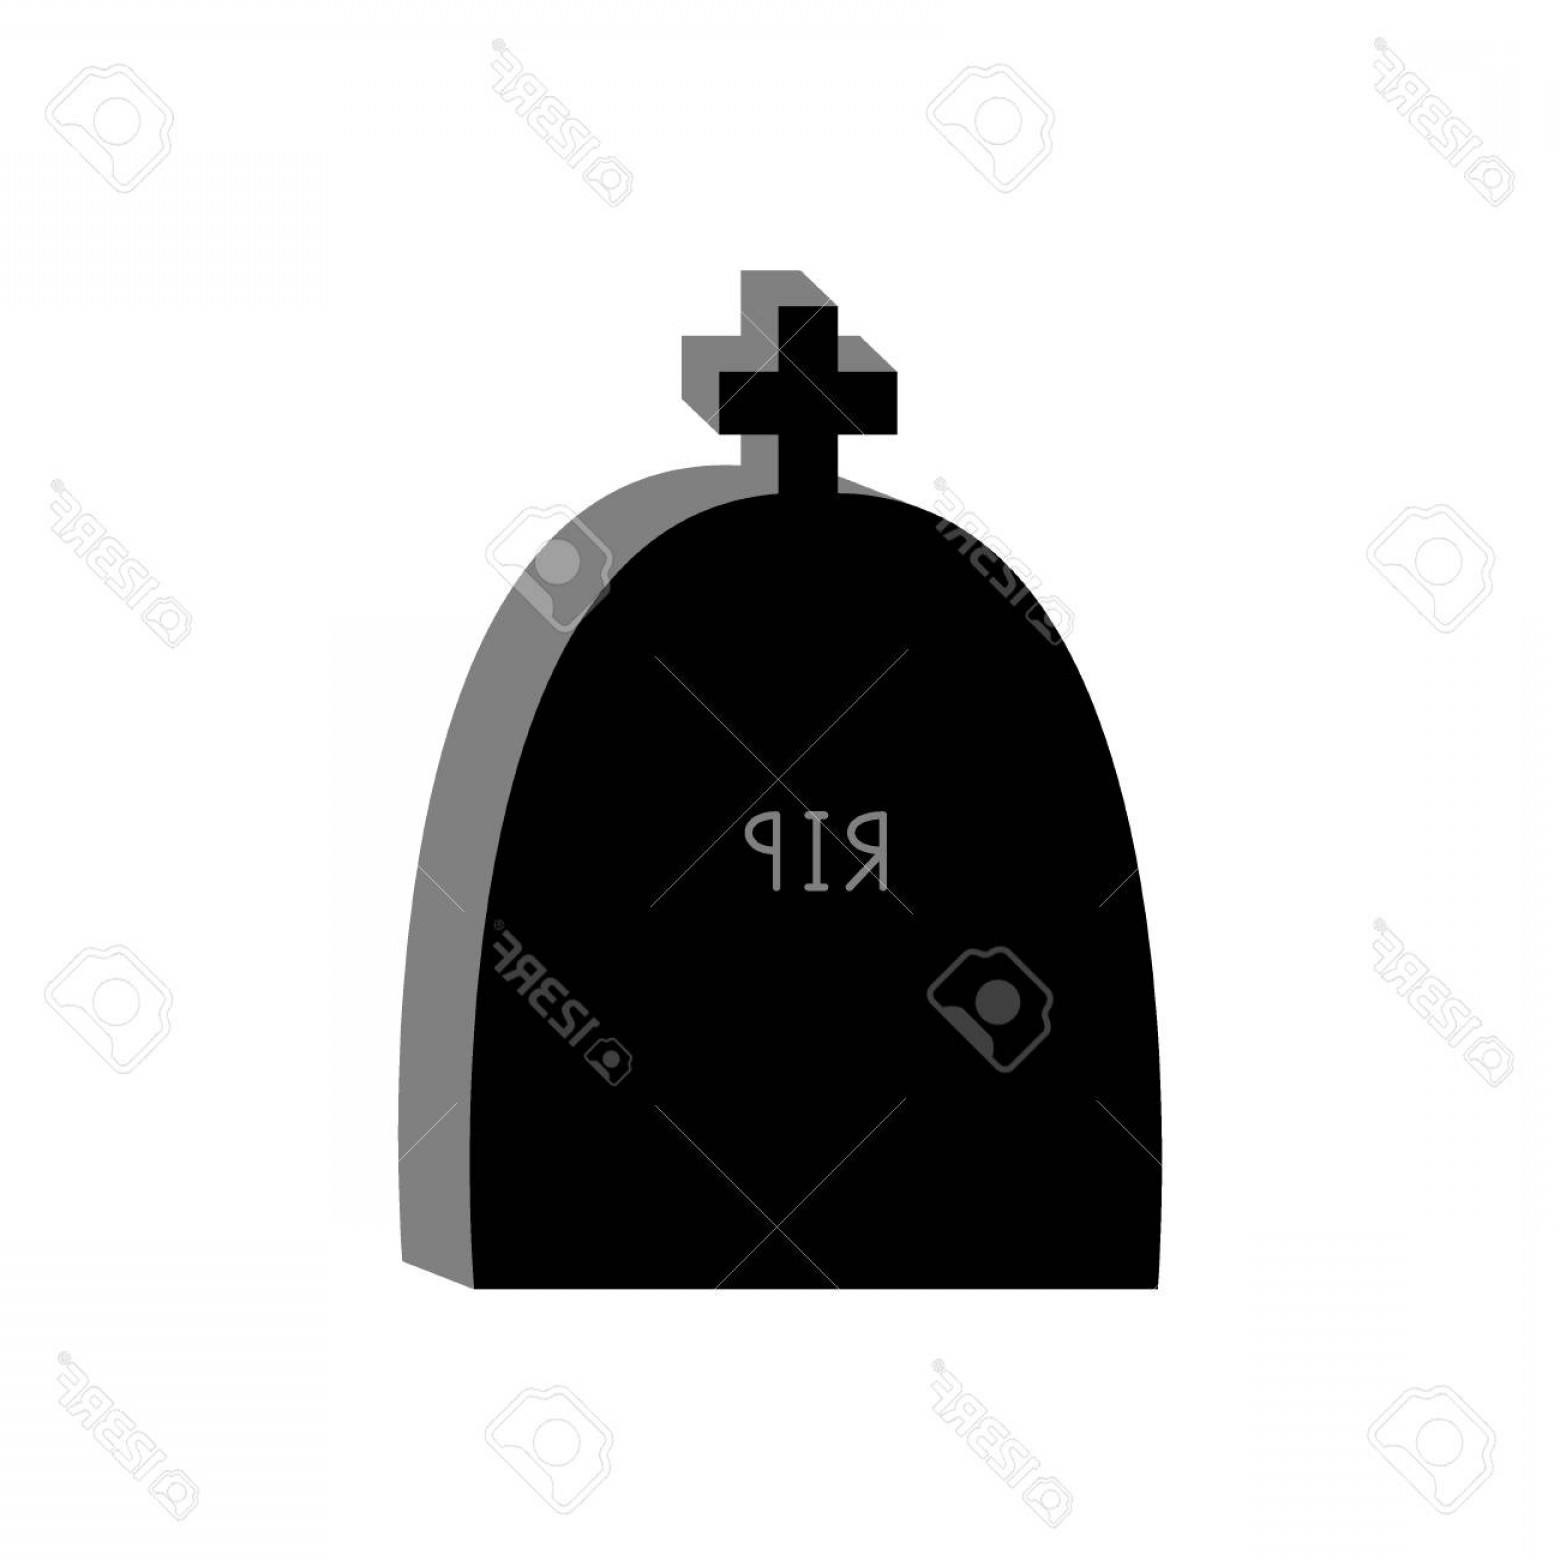 Gravestone Black And Whit Vector JPEG: Photostock Vector Gravestone Icon Grave Stone Black And White Vector Illustration